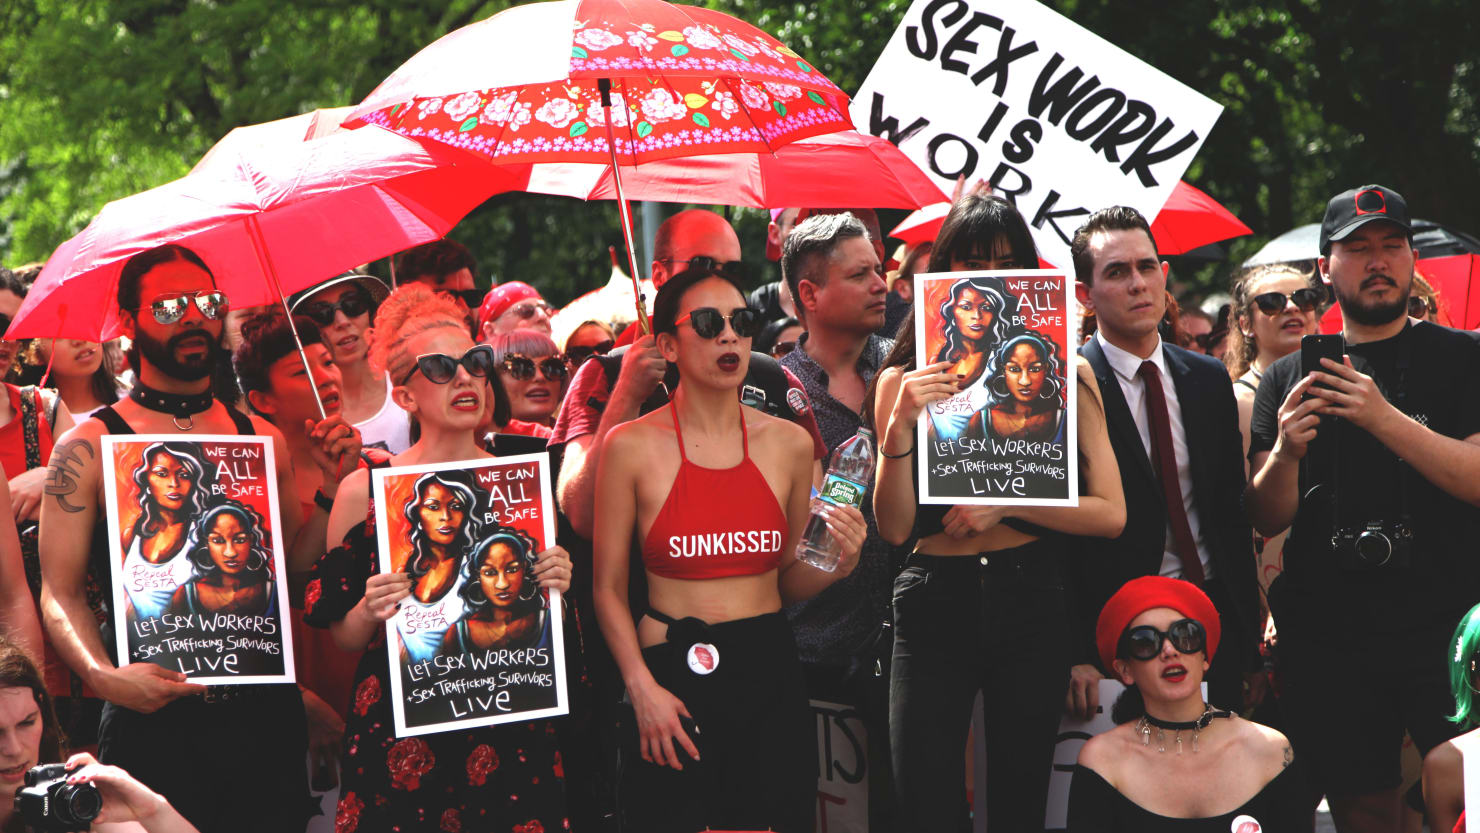 On Saturday In New York, Sex Workersu0027 Rights Activists Gathered To Denounce  Legislation That Puts Lives In Danger U2014 And To Reclaim A Day With A History  Of ...